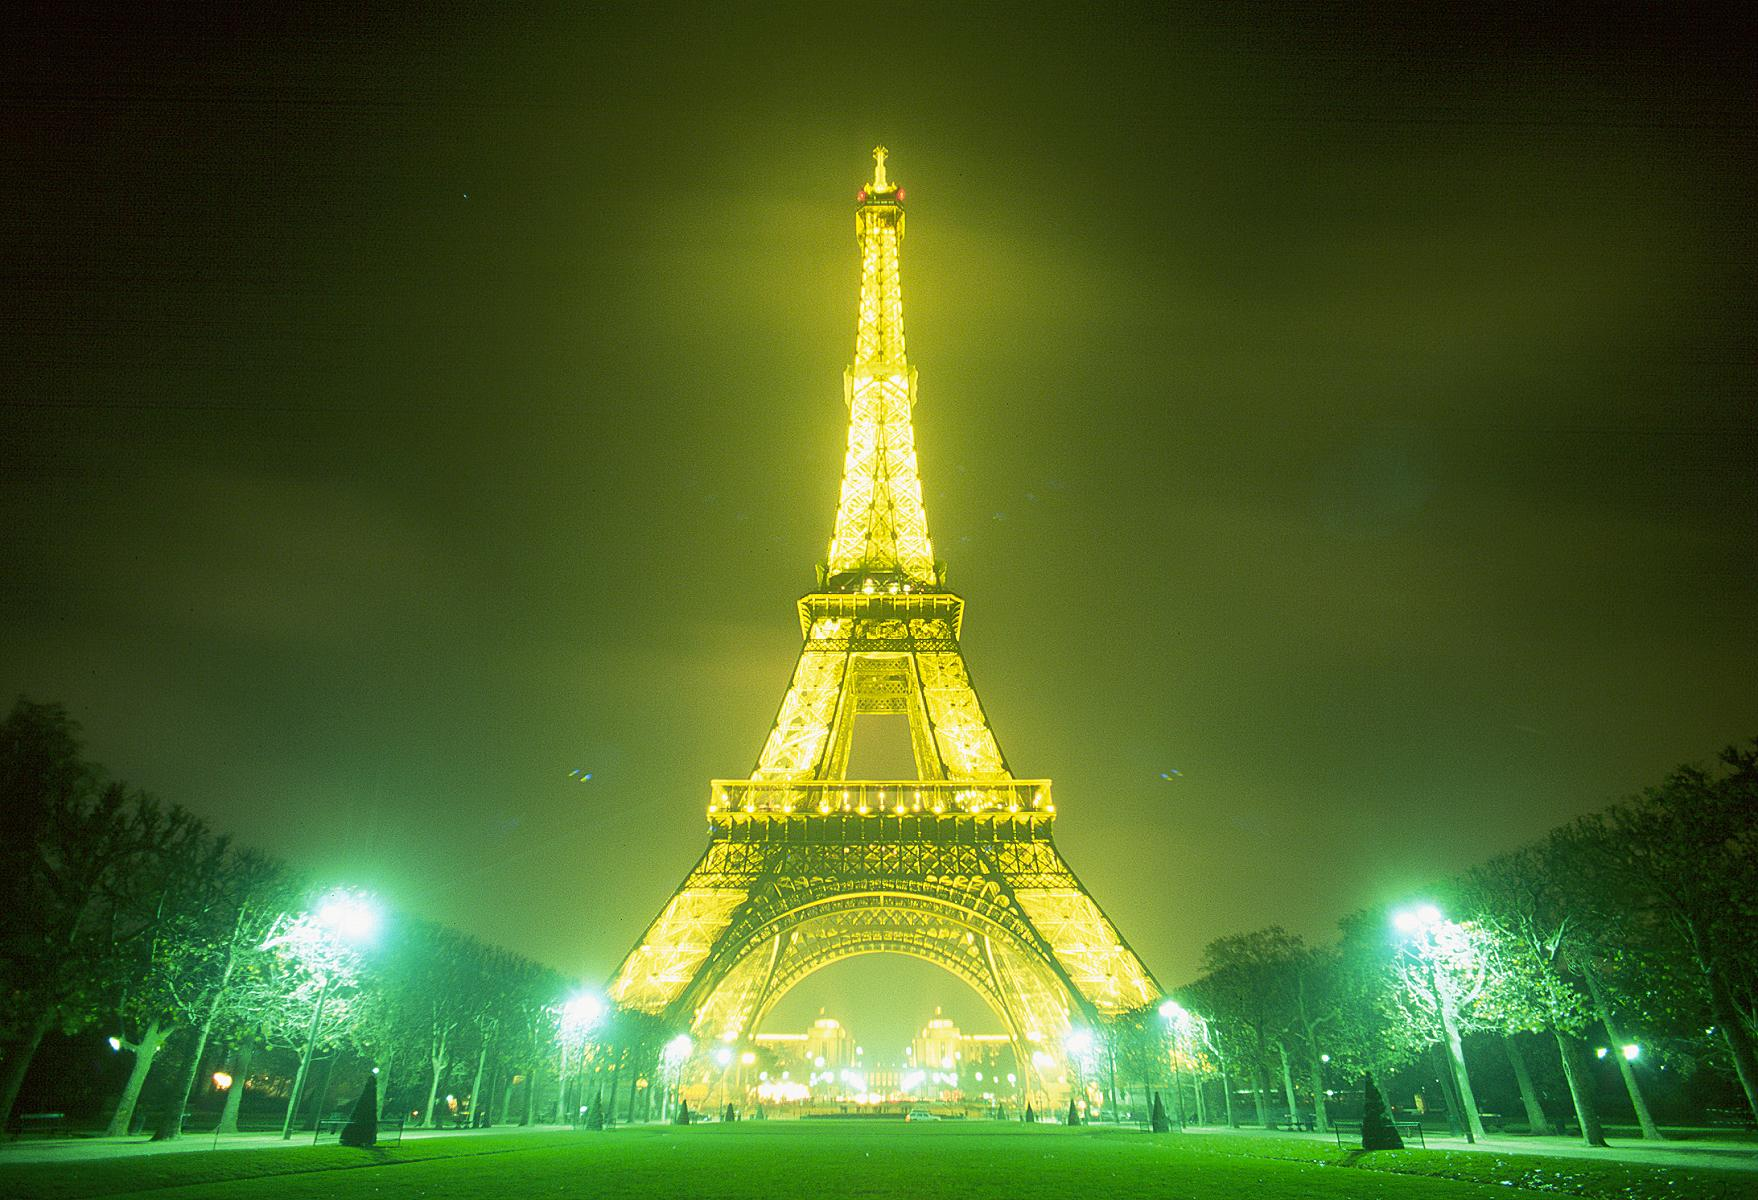 Paris Eiffel Tower at Night